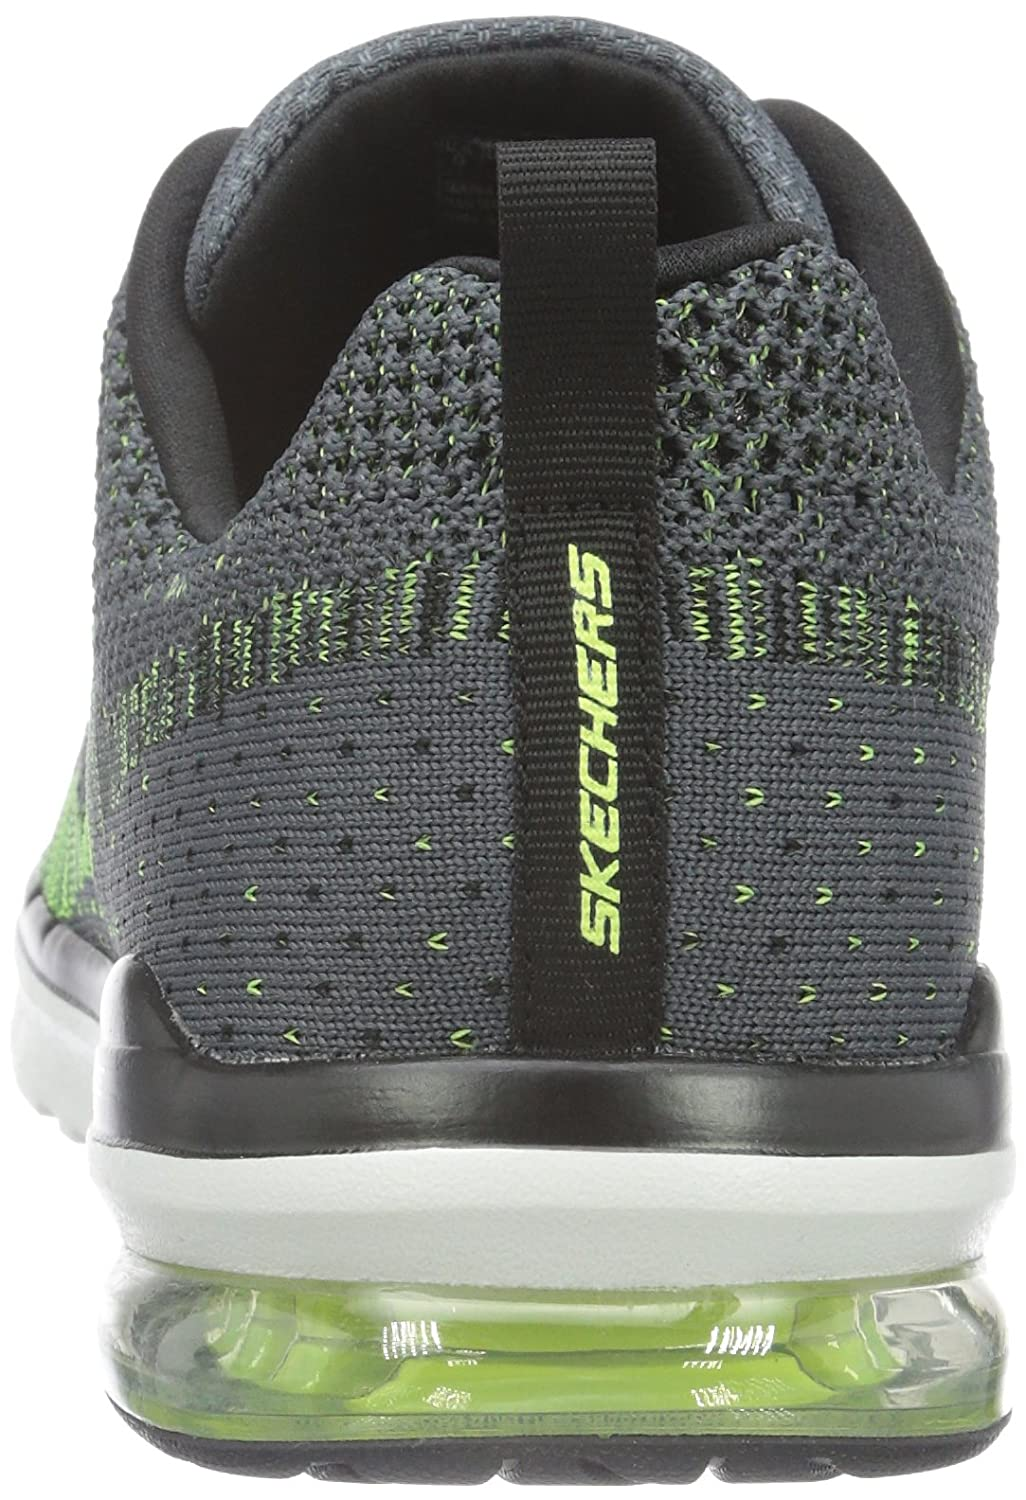 Skechers SKEES Air Infinity-Rapid Fire - Baskets Sportives, Homme, Gris (cclm), Taille 47.5